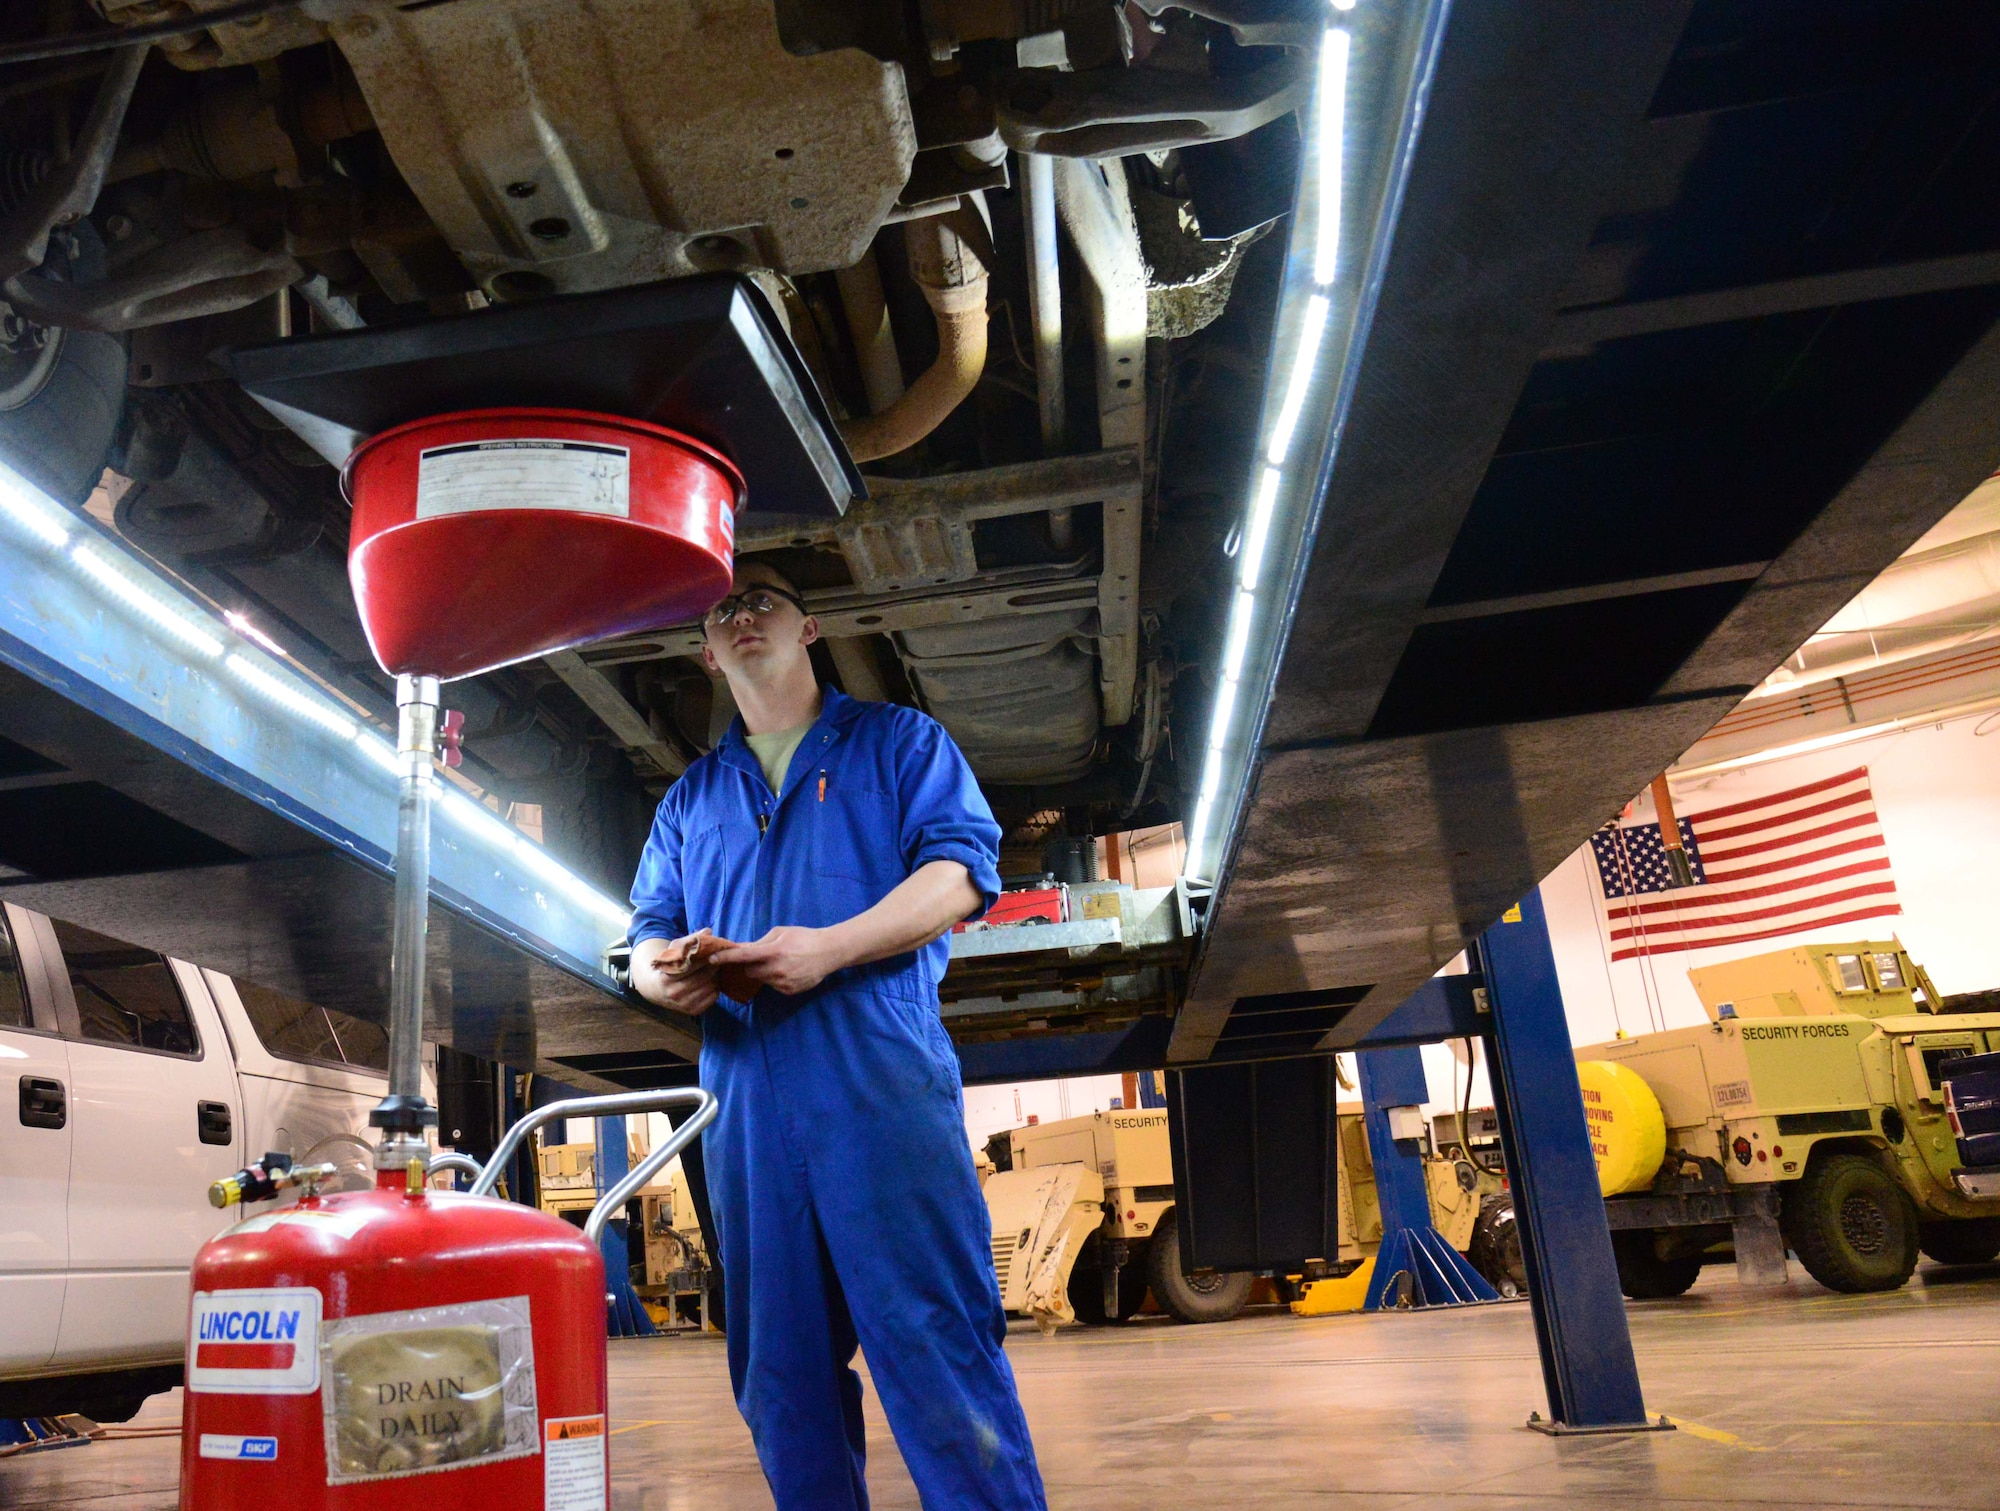 Airman 1st Class Michael Schulz, a 341st Logistics Readiness Squadron vehicle management flight mechanic, changes the oil of a government vehicle March 22, 2016, at Malmstrom Air Force Base, Mont. Schulz was one of two Airmen tasked with changing the oil of six vehicles which will be testing a new bio-based synthetic oil which could potentially help the Air Force's initiative to use more sustainable materials and be environmentally conscious. (U.S. Air Force photo/Airman 1st Class Magen M. Reeves)